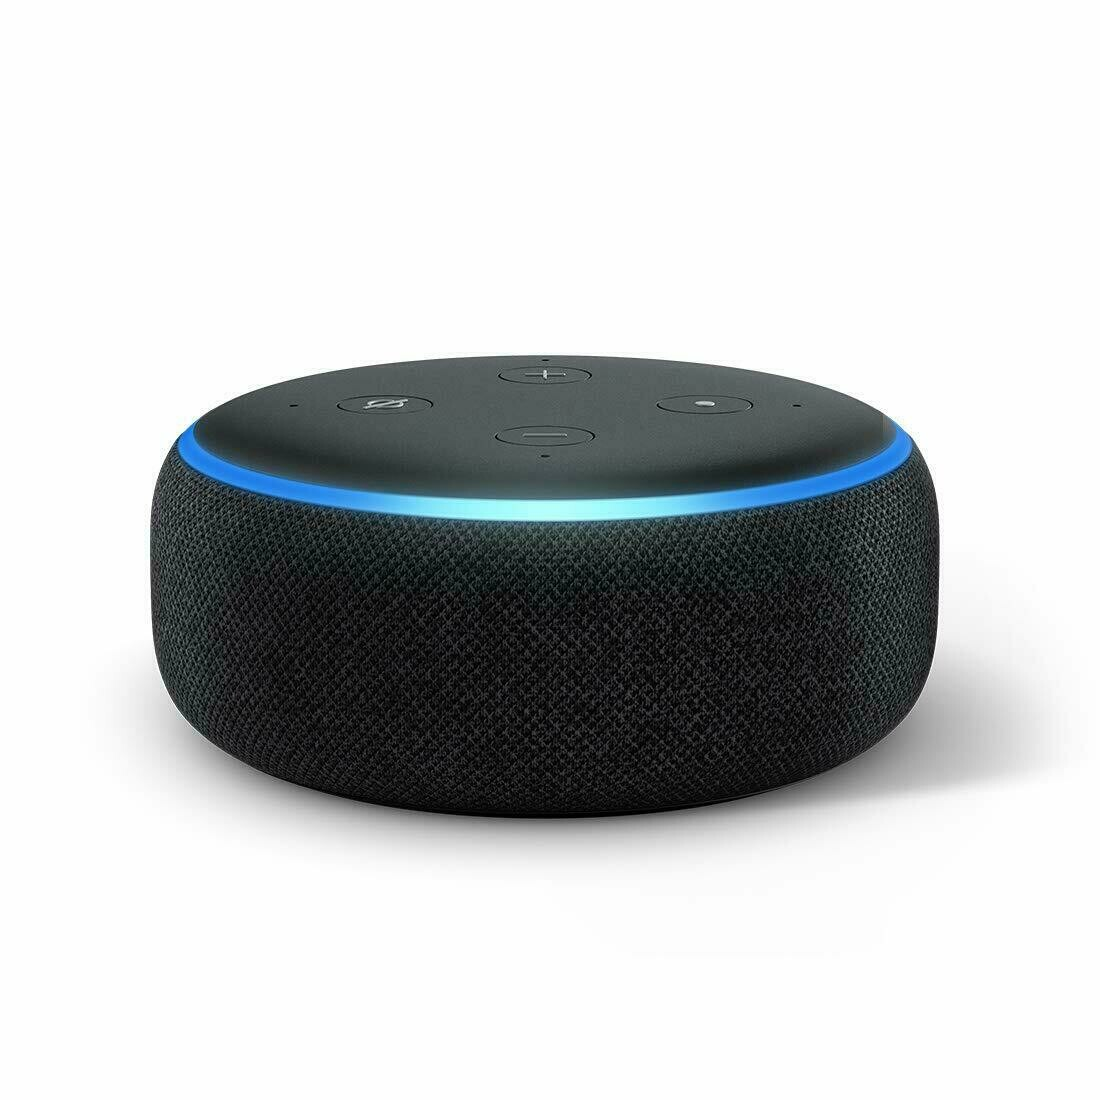 Amazon Echo Dot 3rd Gen Smart speaker with Alexa, Black